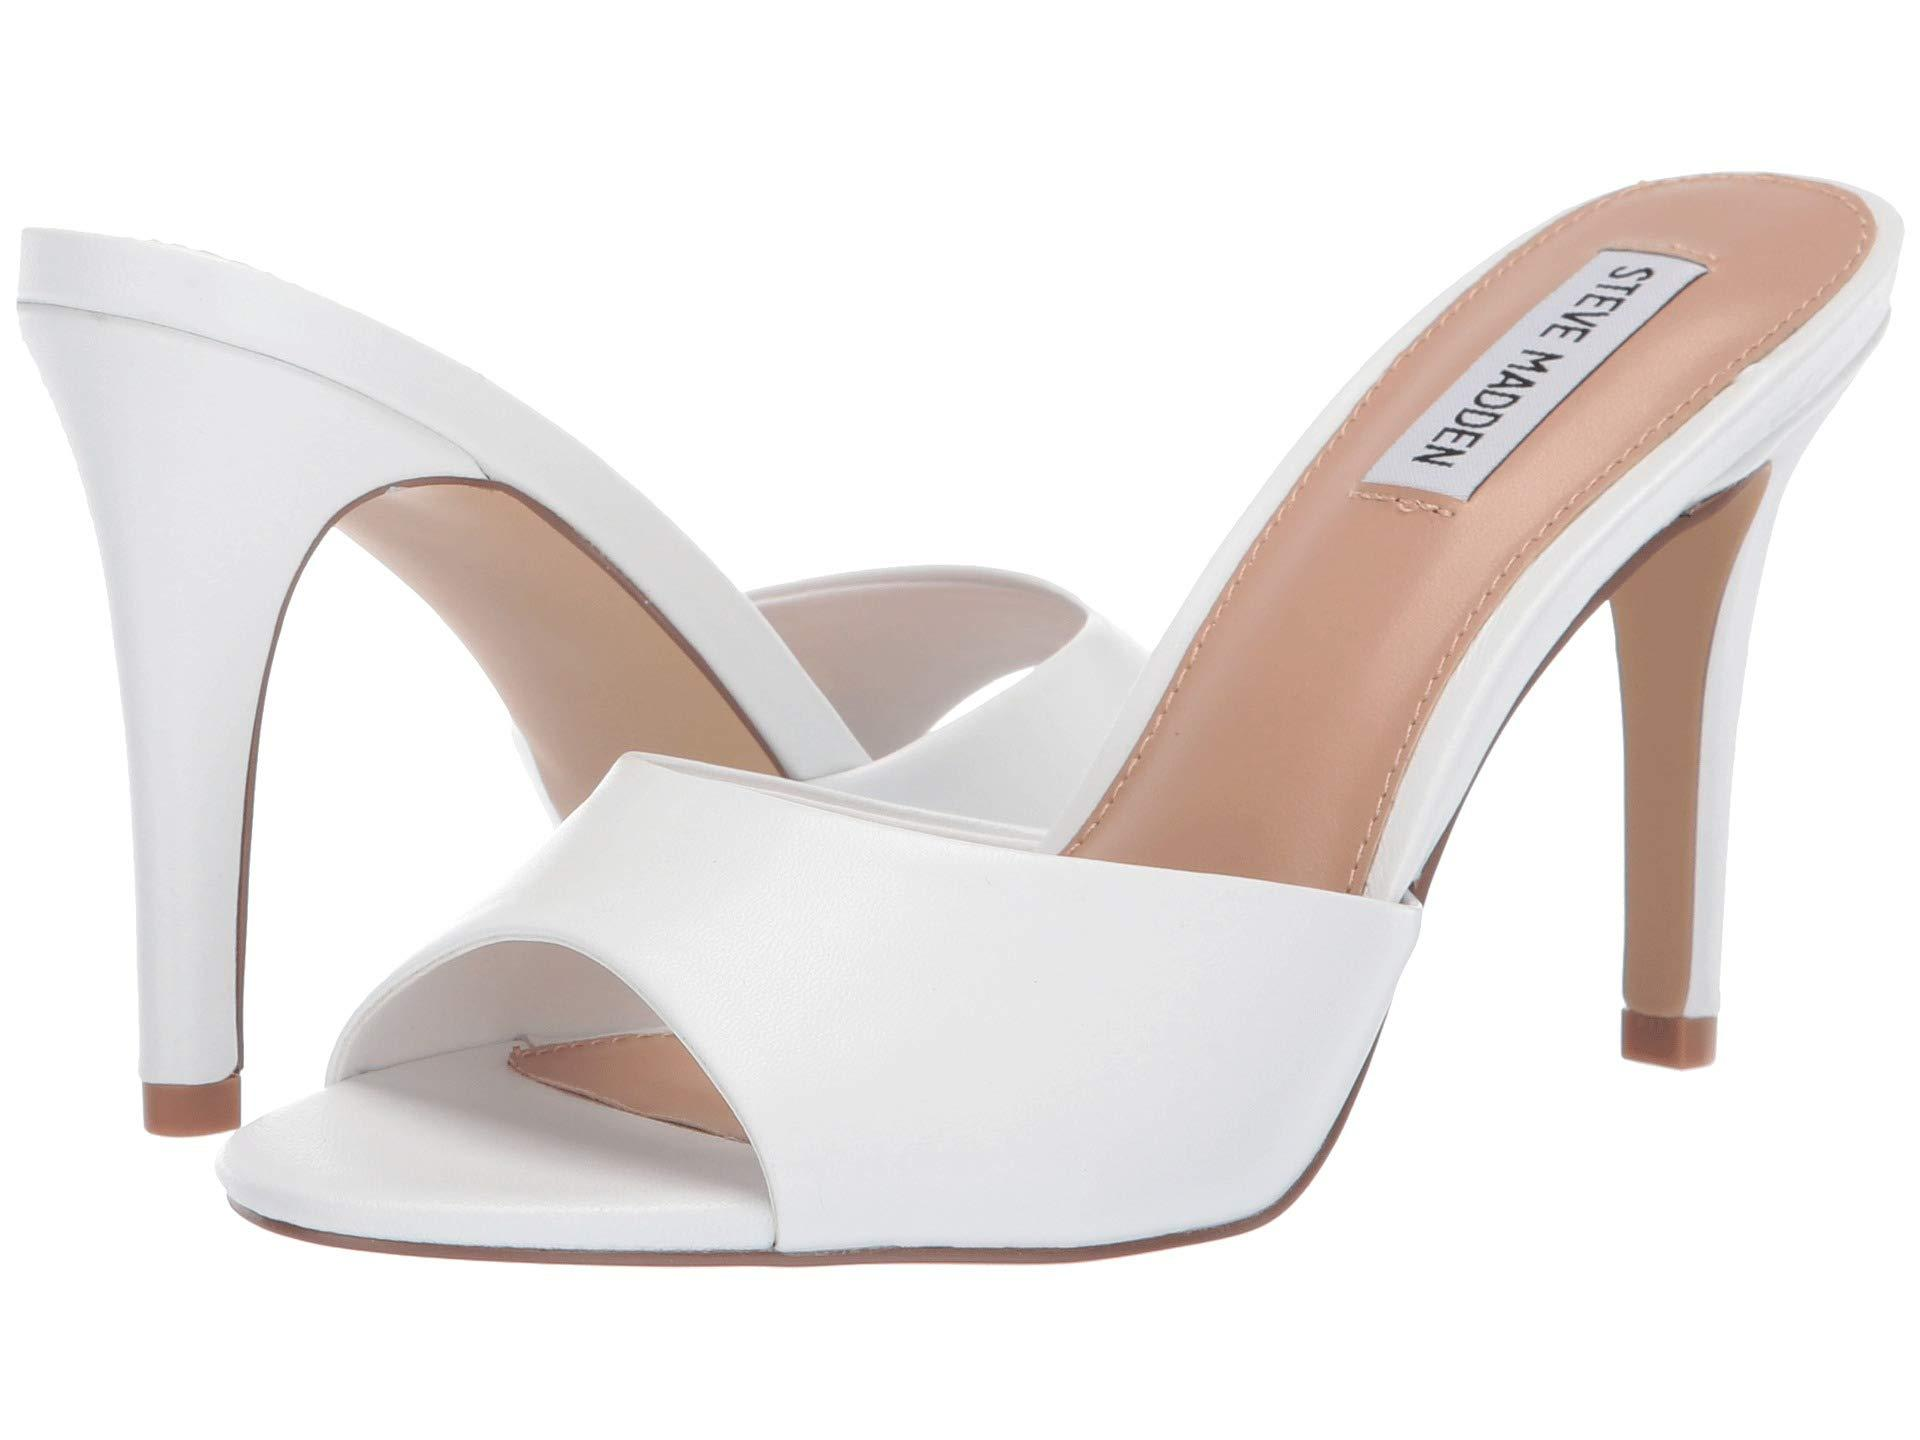 c0ef3f8e25c Lyst - Steve Madden Erin Heeled Mule (yellow Neon) High Heels in White